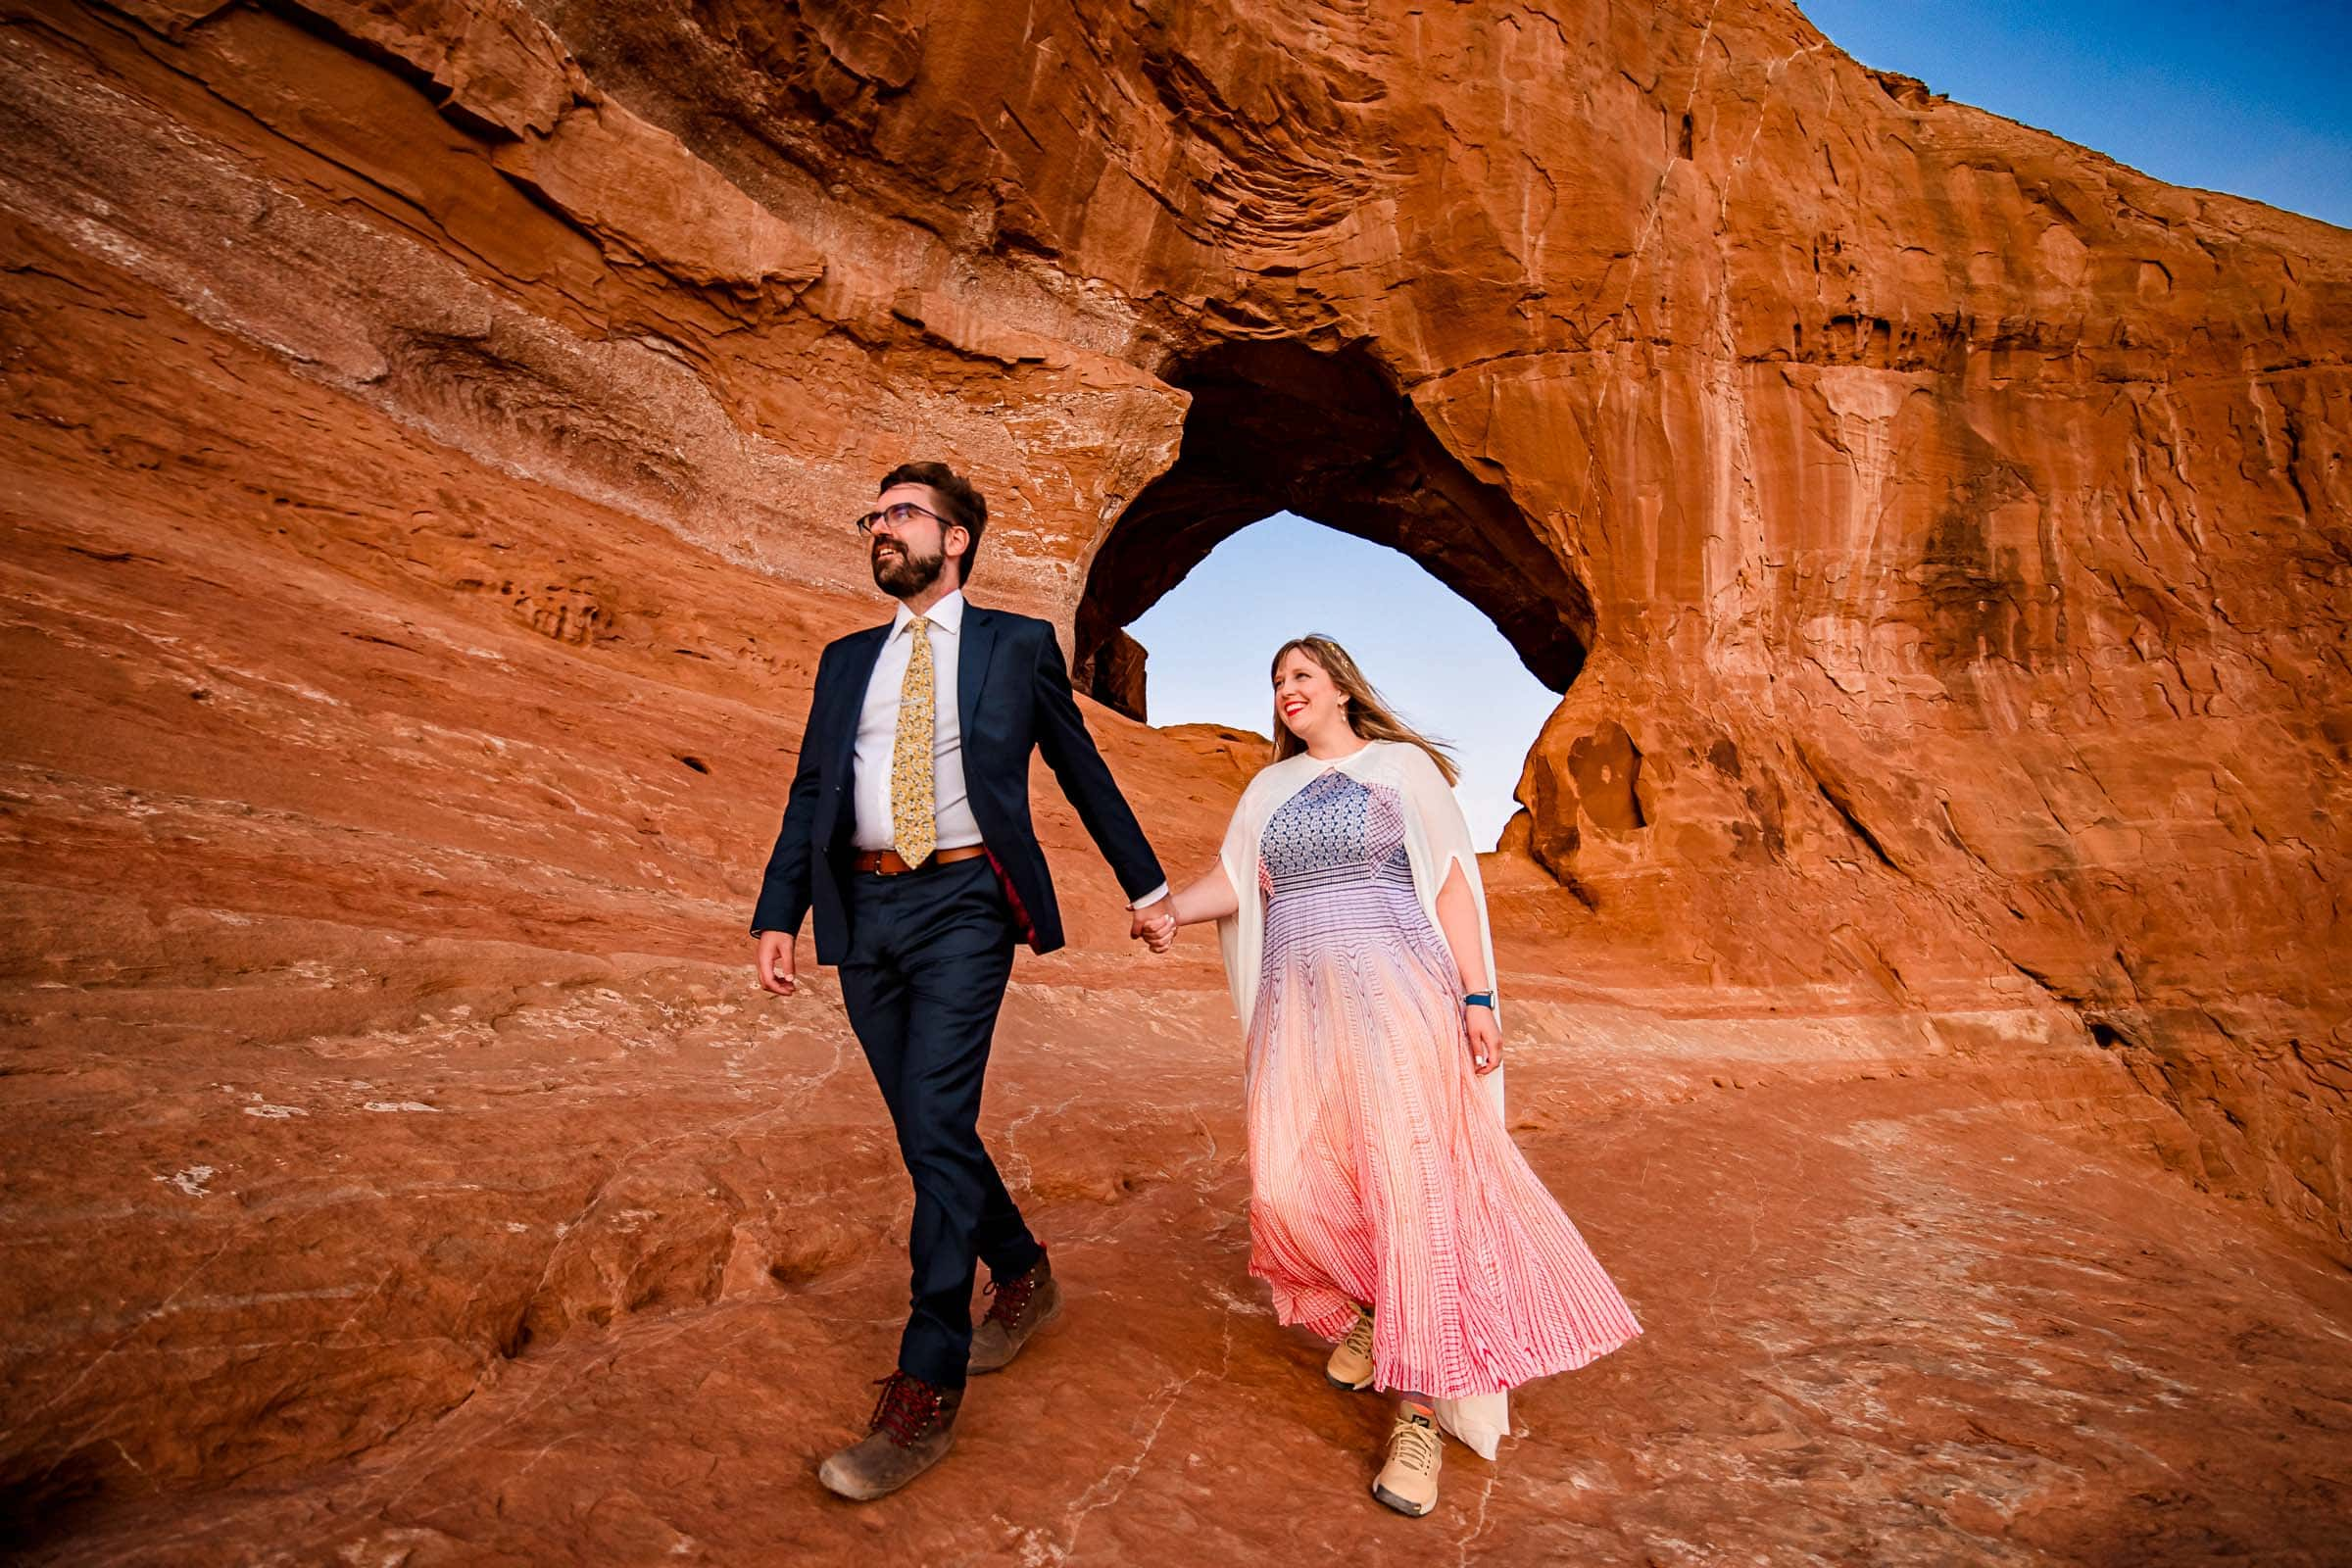 Bride and groom under walking through landscape in a red-rock wonderland in Moab Utah during their adventure elopement